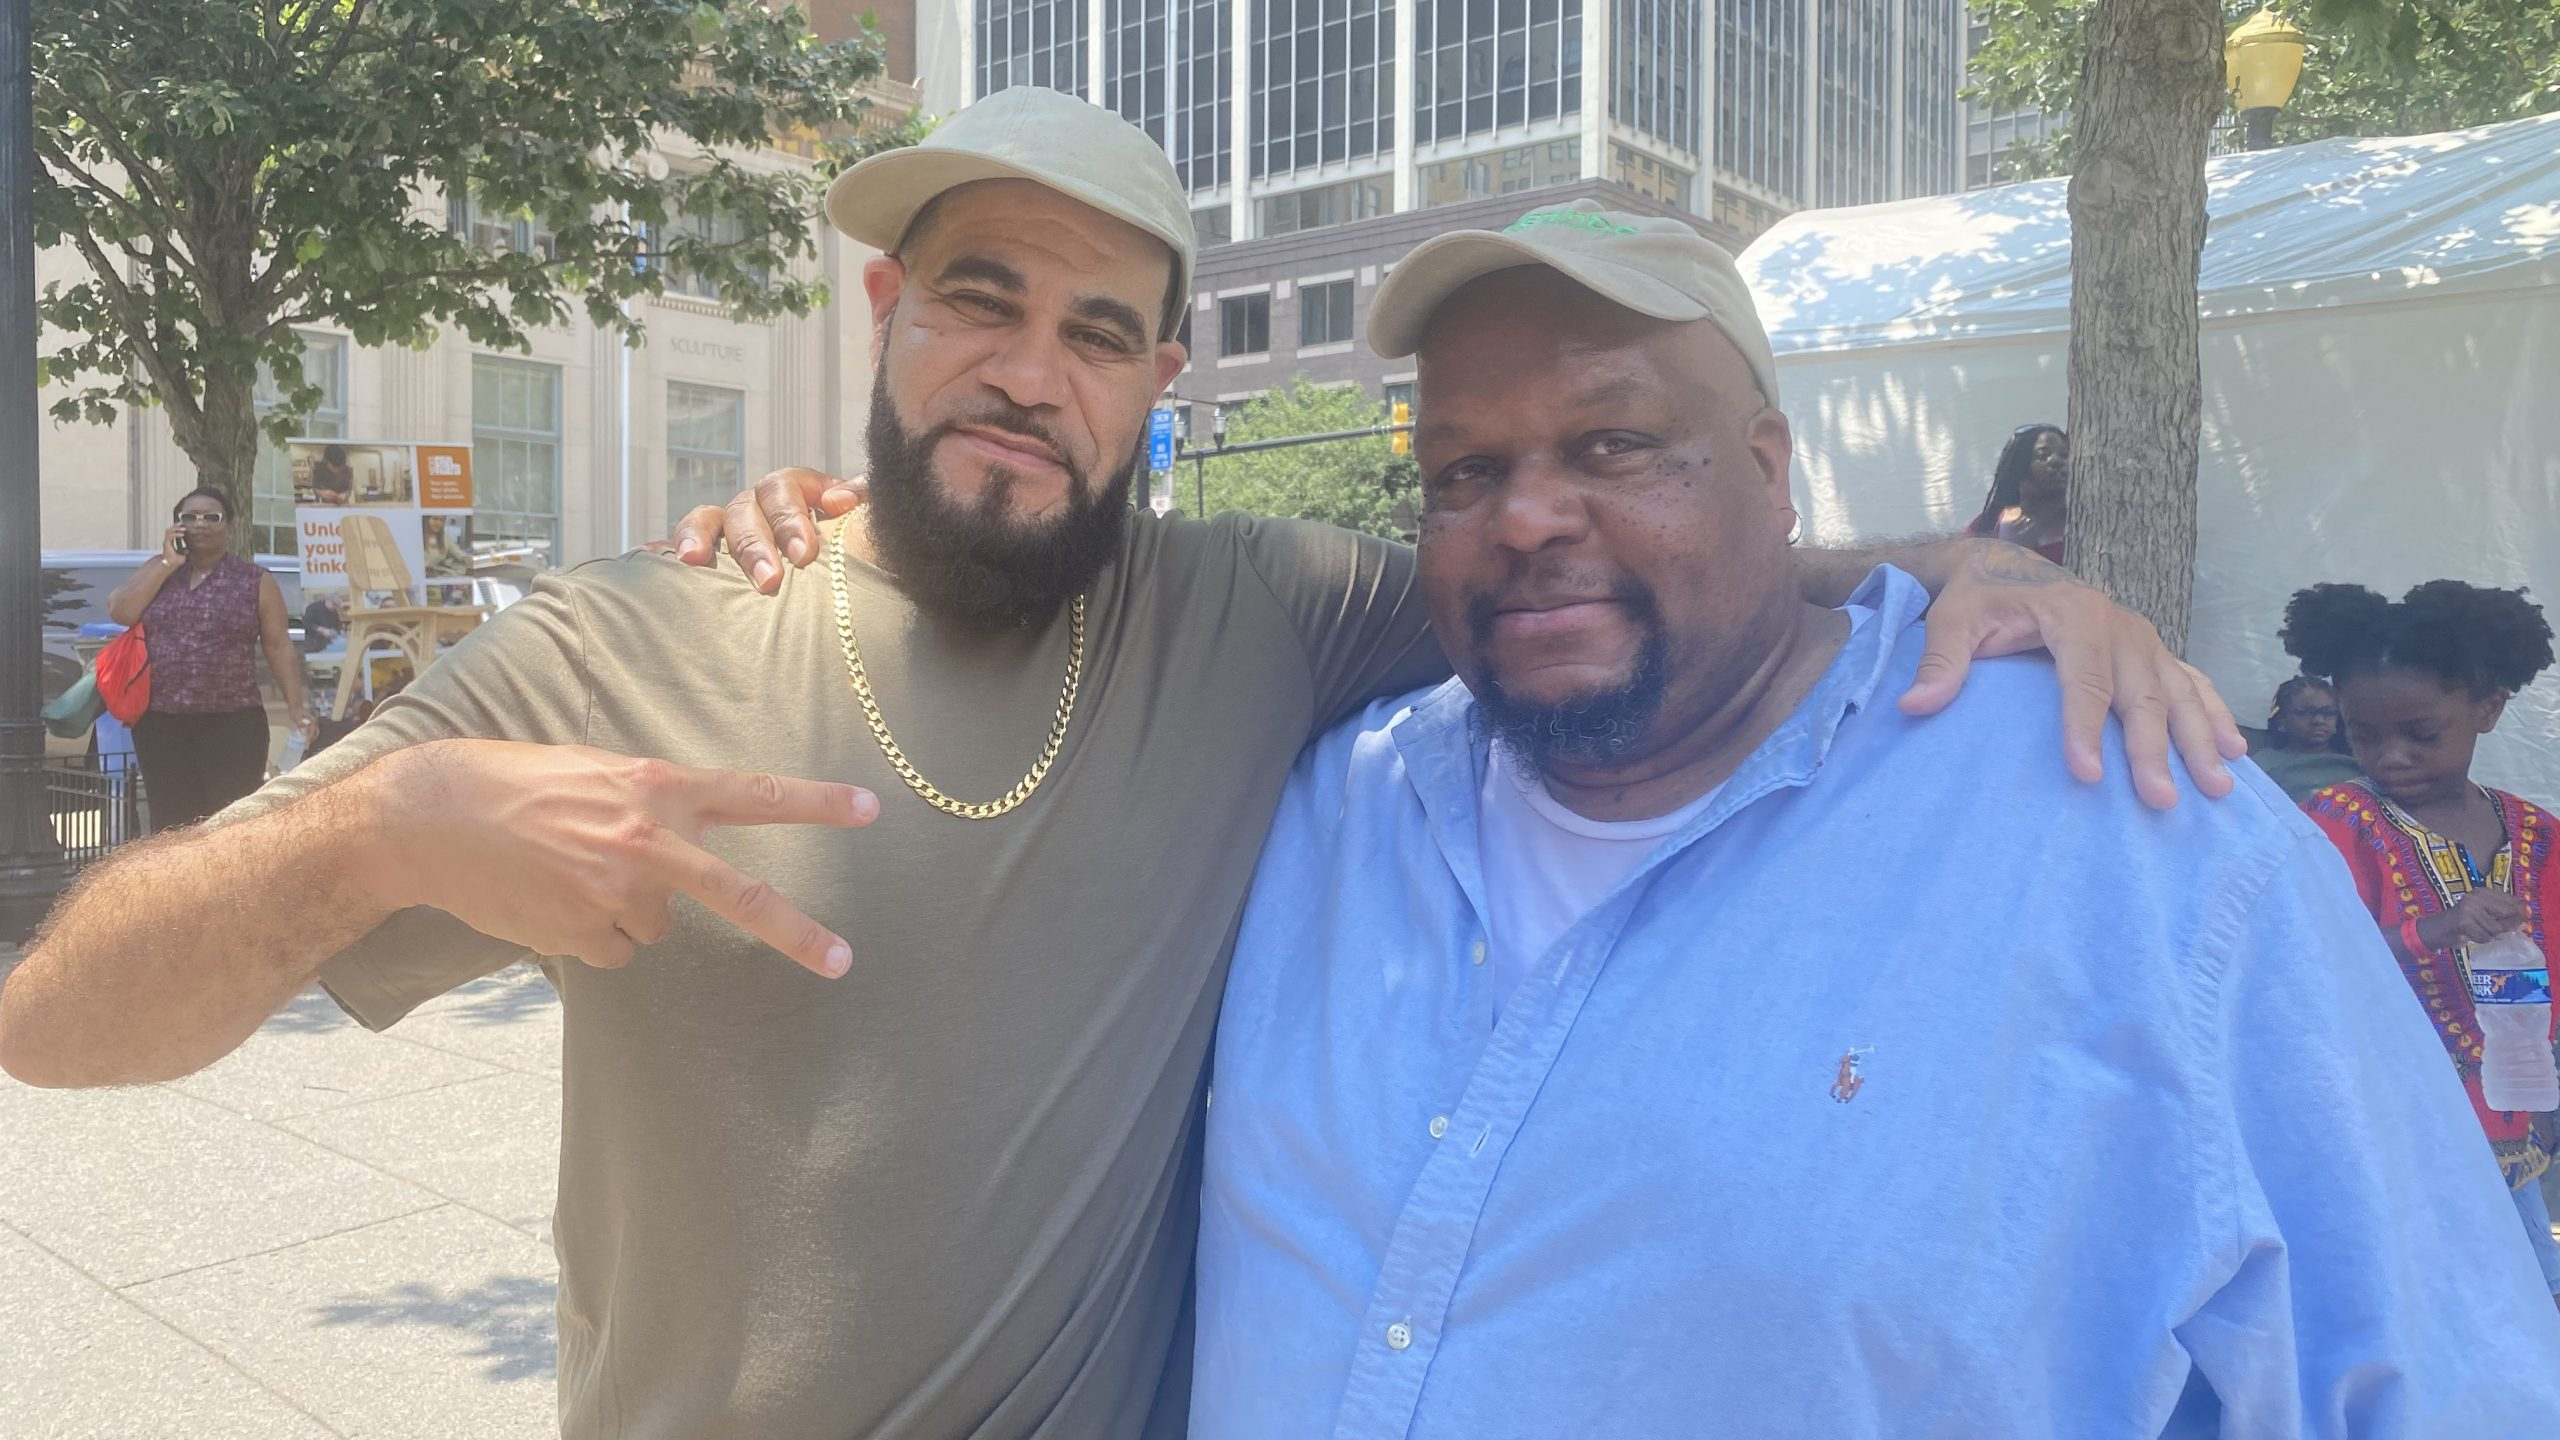 Grouchy Greg and Tuck at the 1st Annual Juneteenth Festival at Rodney Square